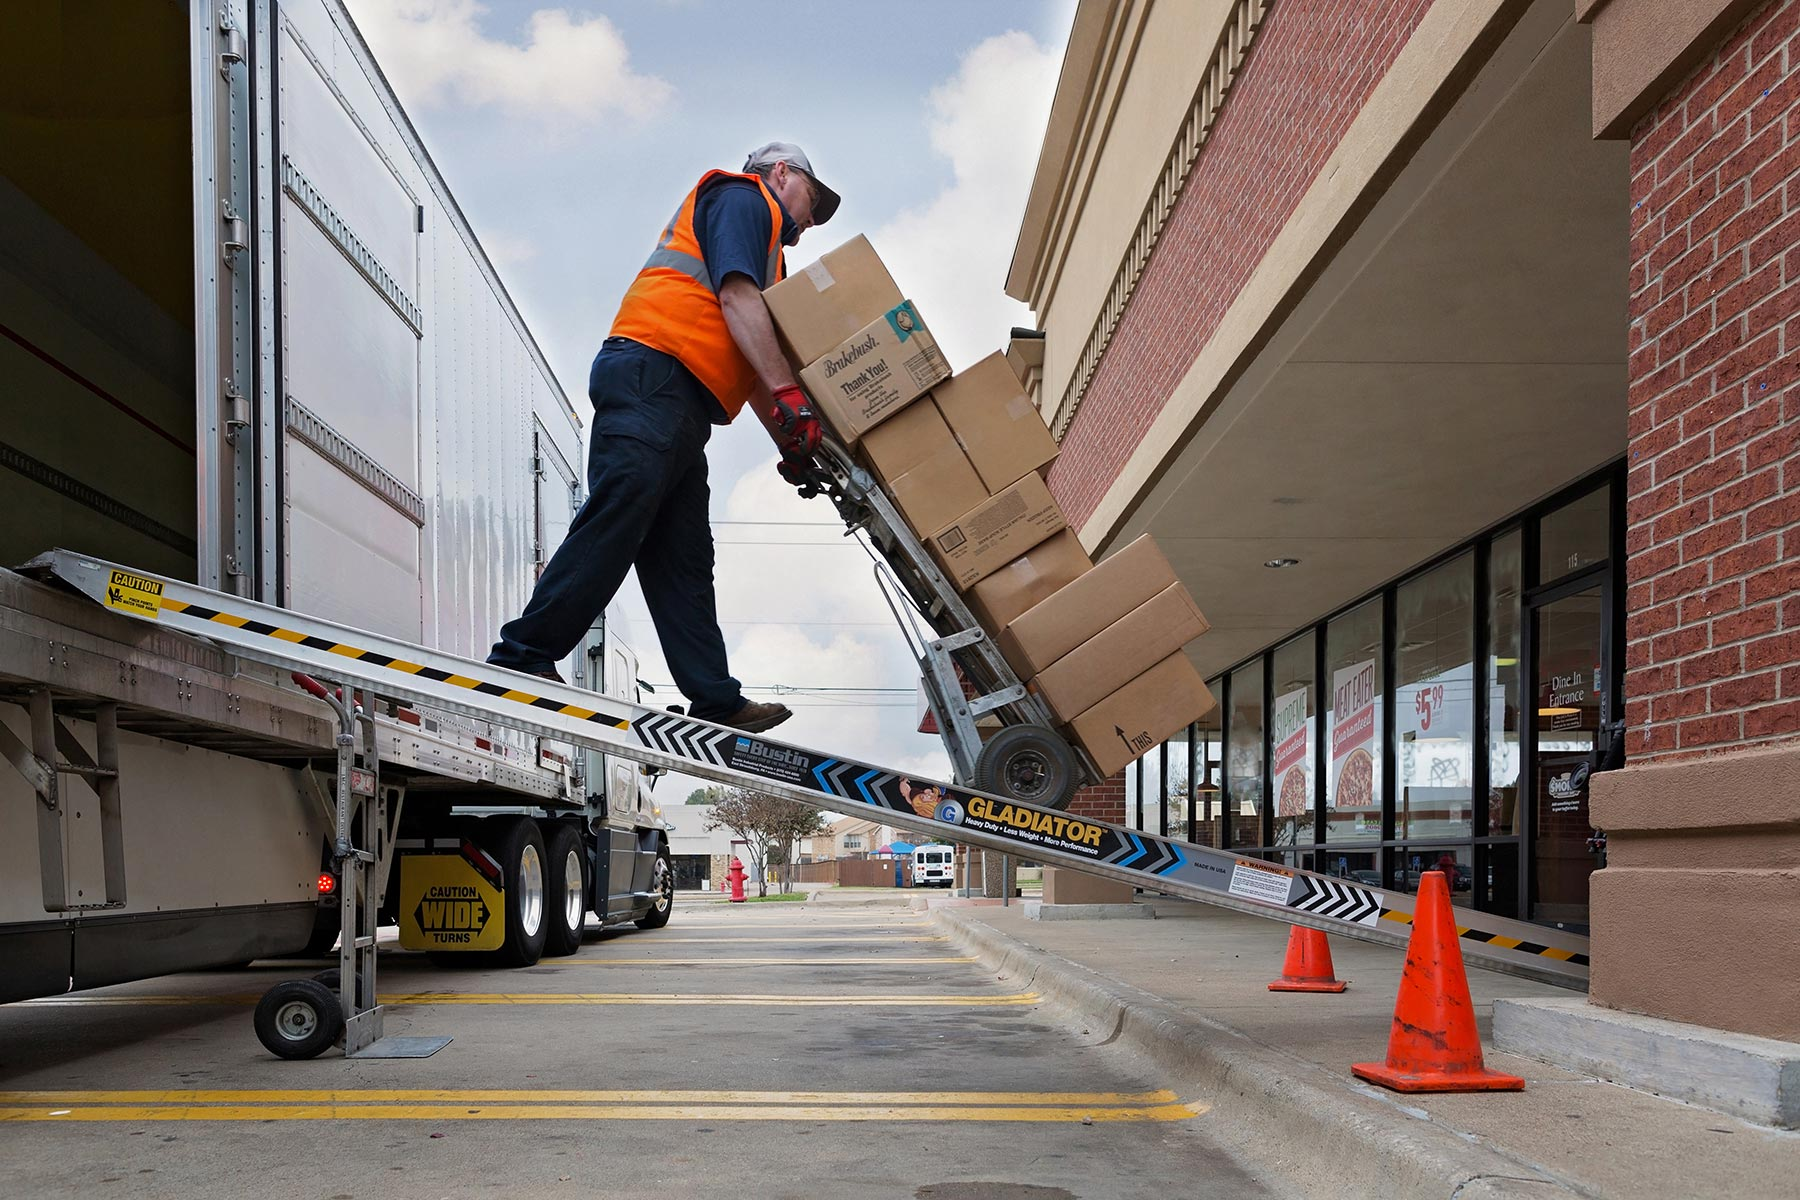 Man with a tall stack of boxes on a hand truck moving down a ramp from a truck